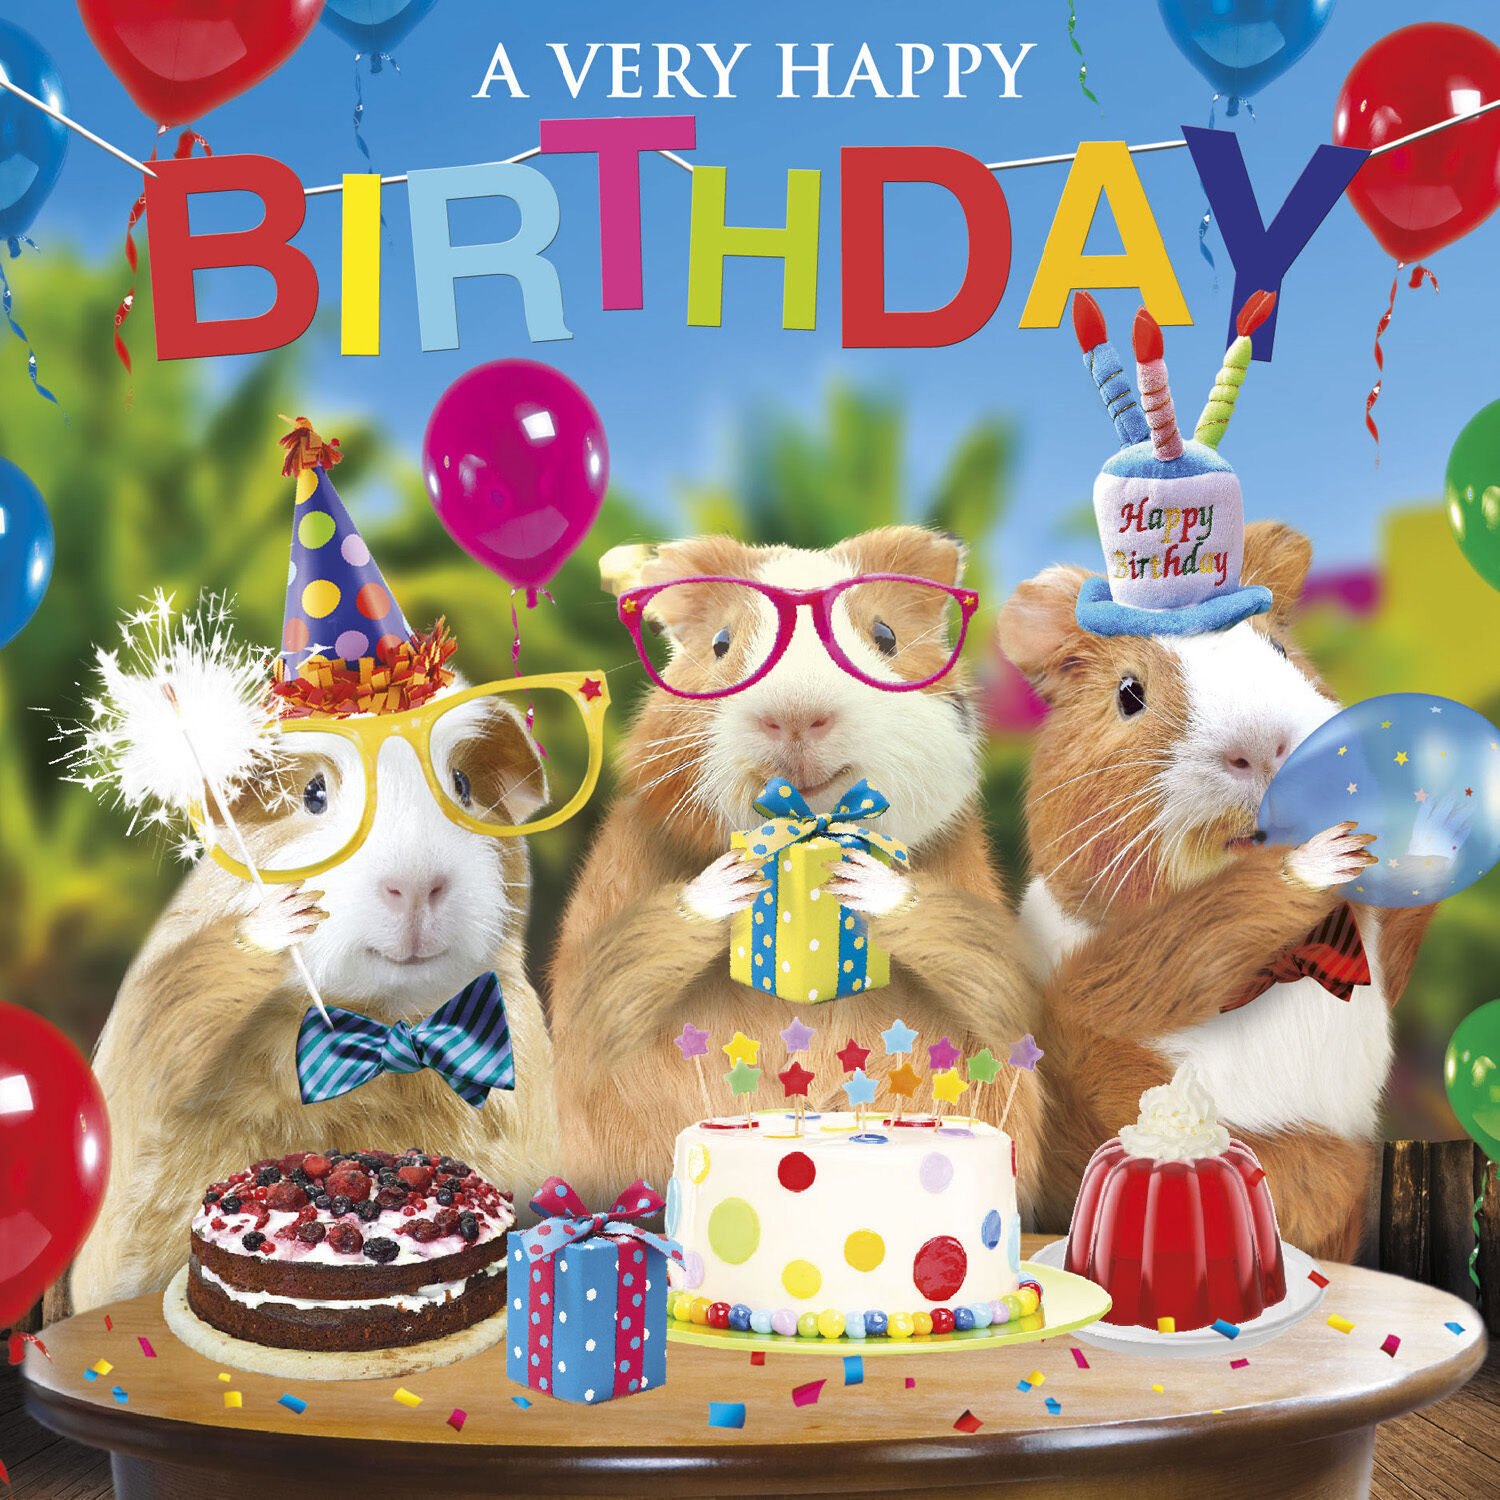 Funny Guinea Pig Birthday Card Birthday Fun Party Hats